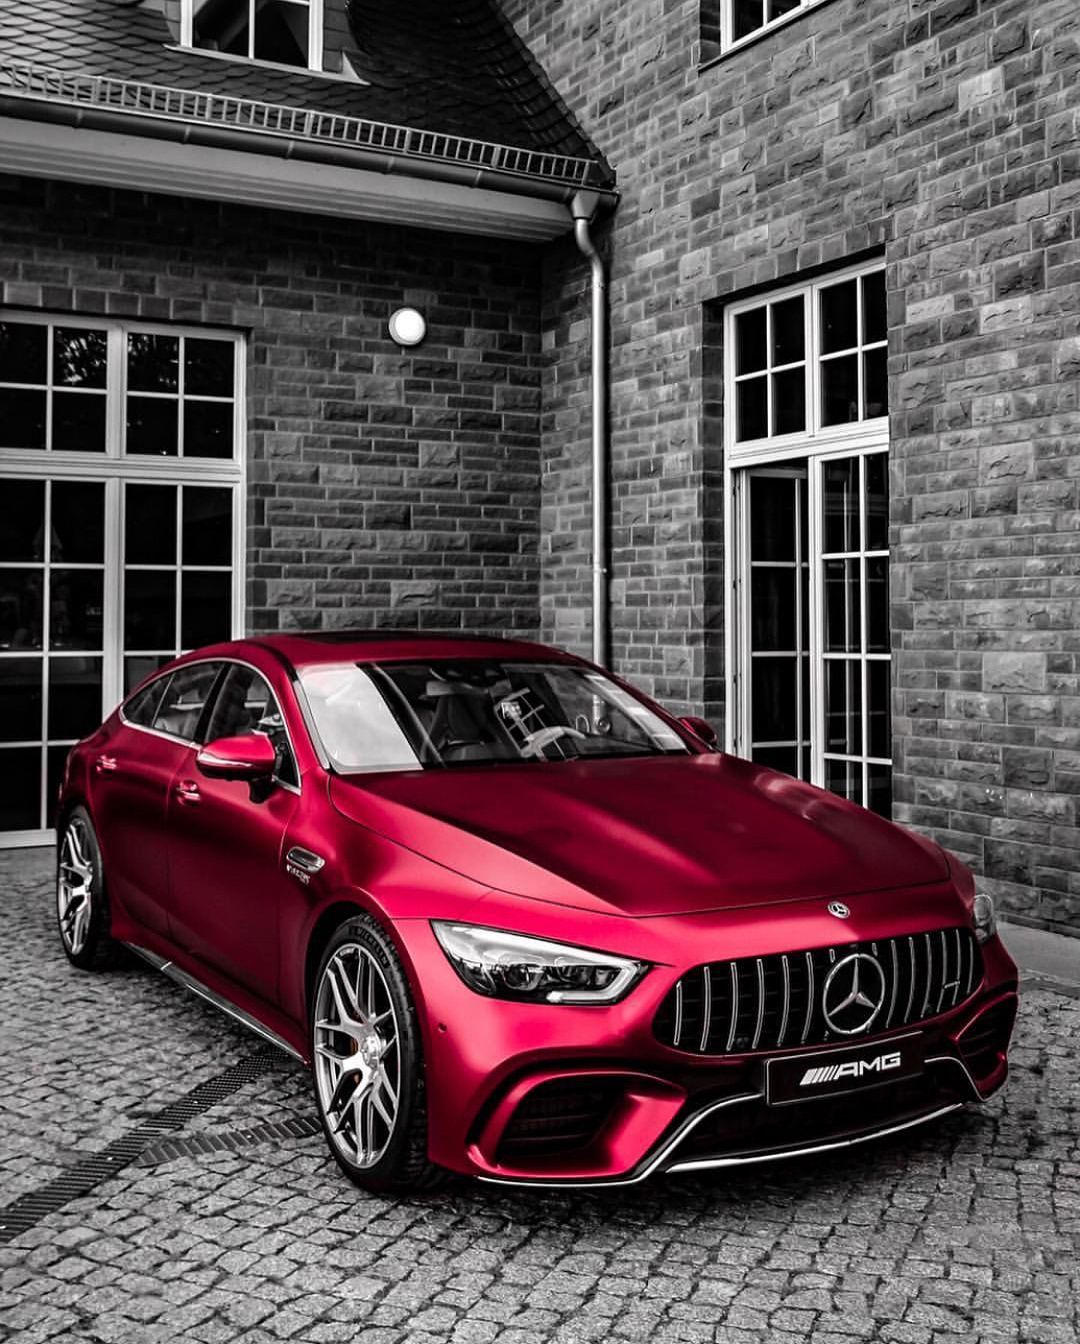 The Most Luxury Cars In The World With Best Photos Of Cars Best Luxury Cars Mercedes Car Luxury Cars